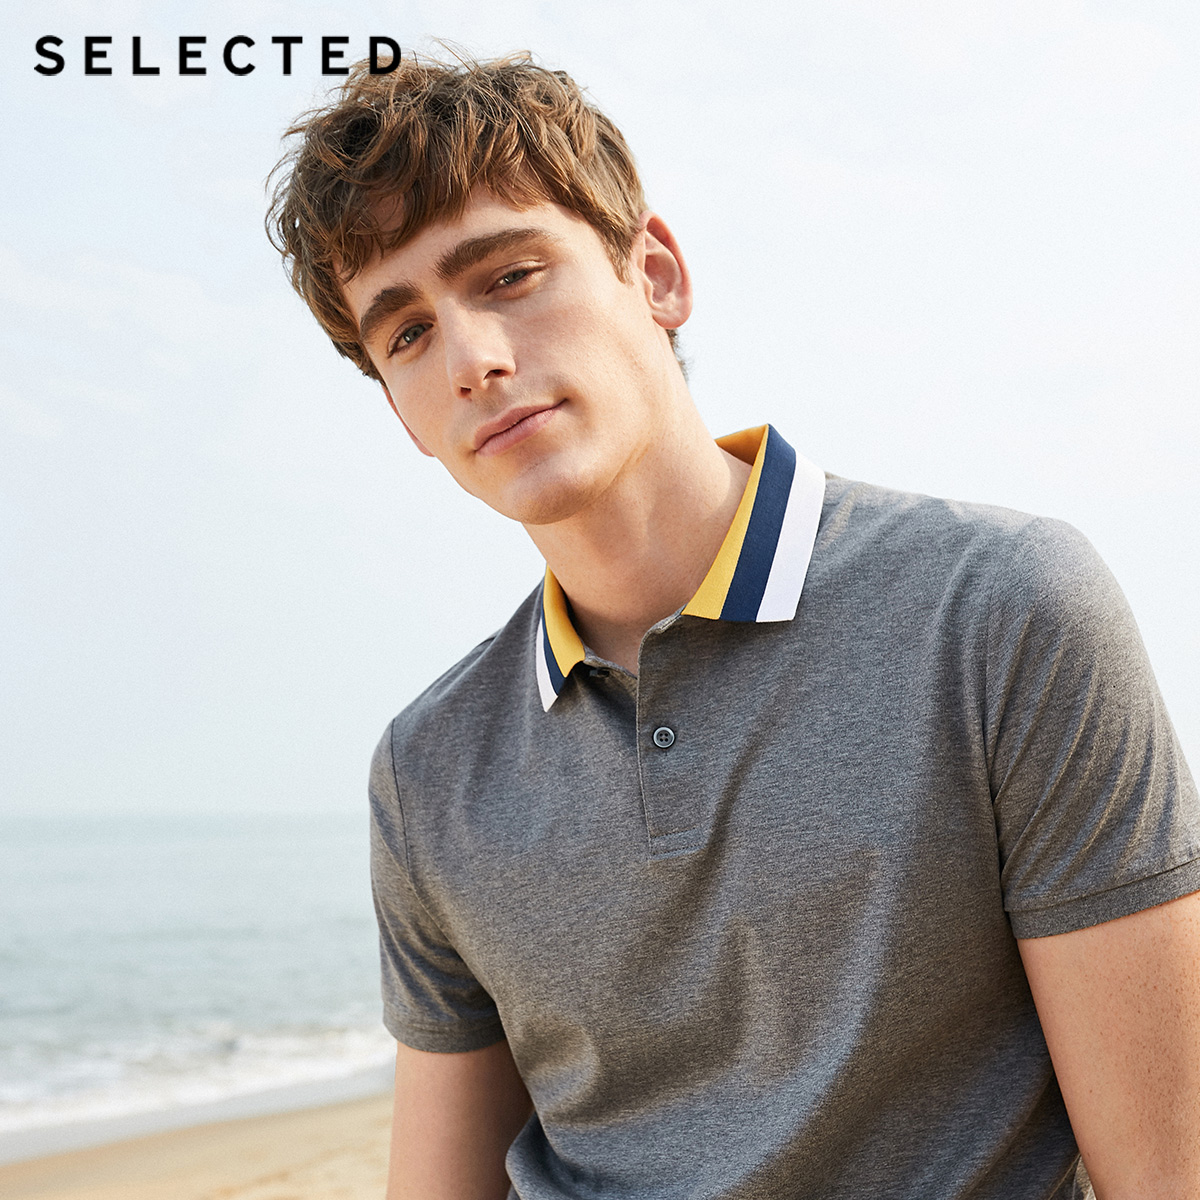 SELECTED Men's Summer 100% Cotton Contrasting Slim Fit Short-sleeved Poloshirt S|419206546